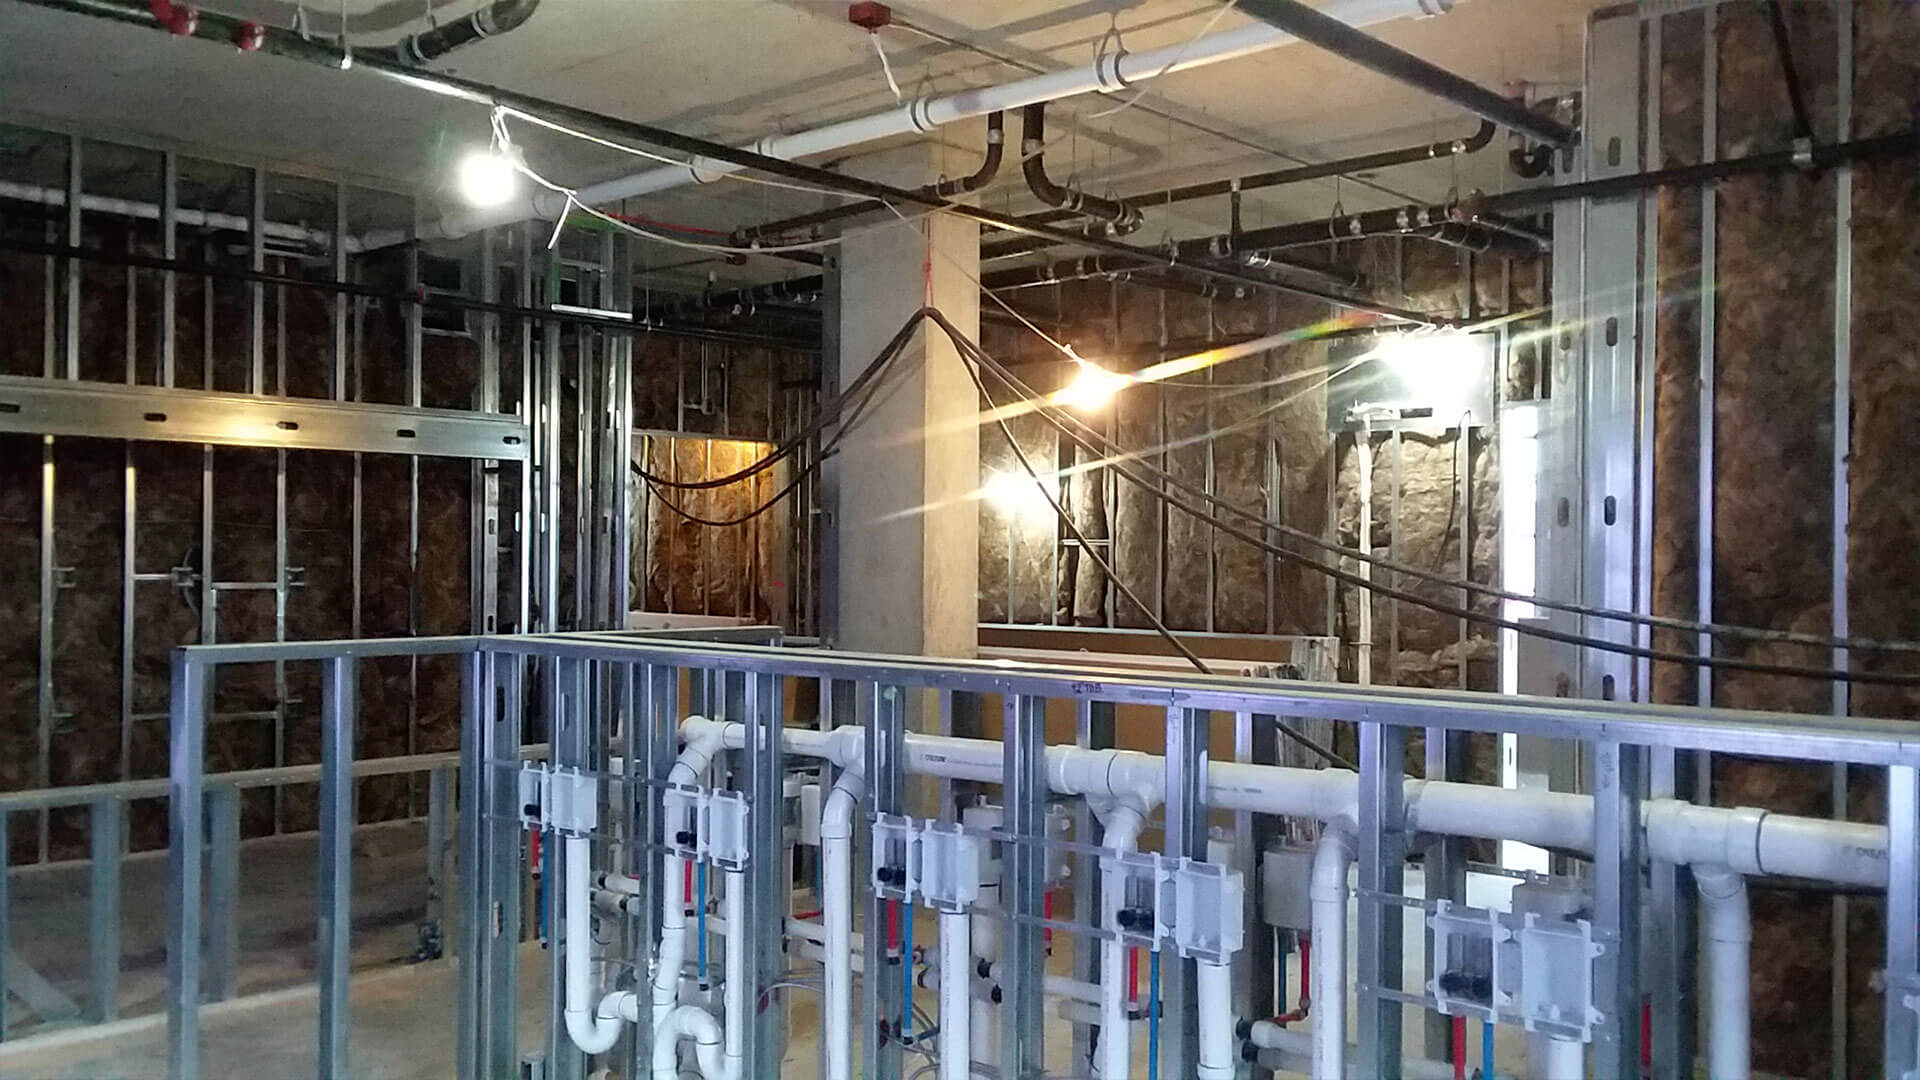 Construction Update at Stateside Apartments Near WWU